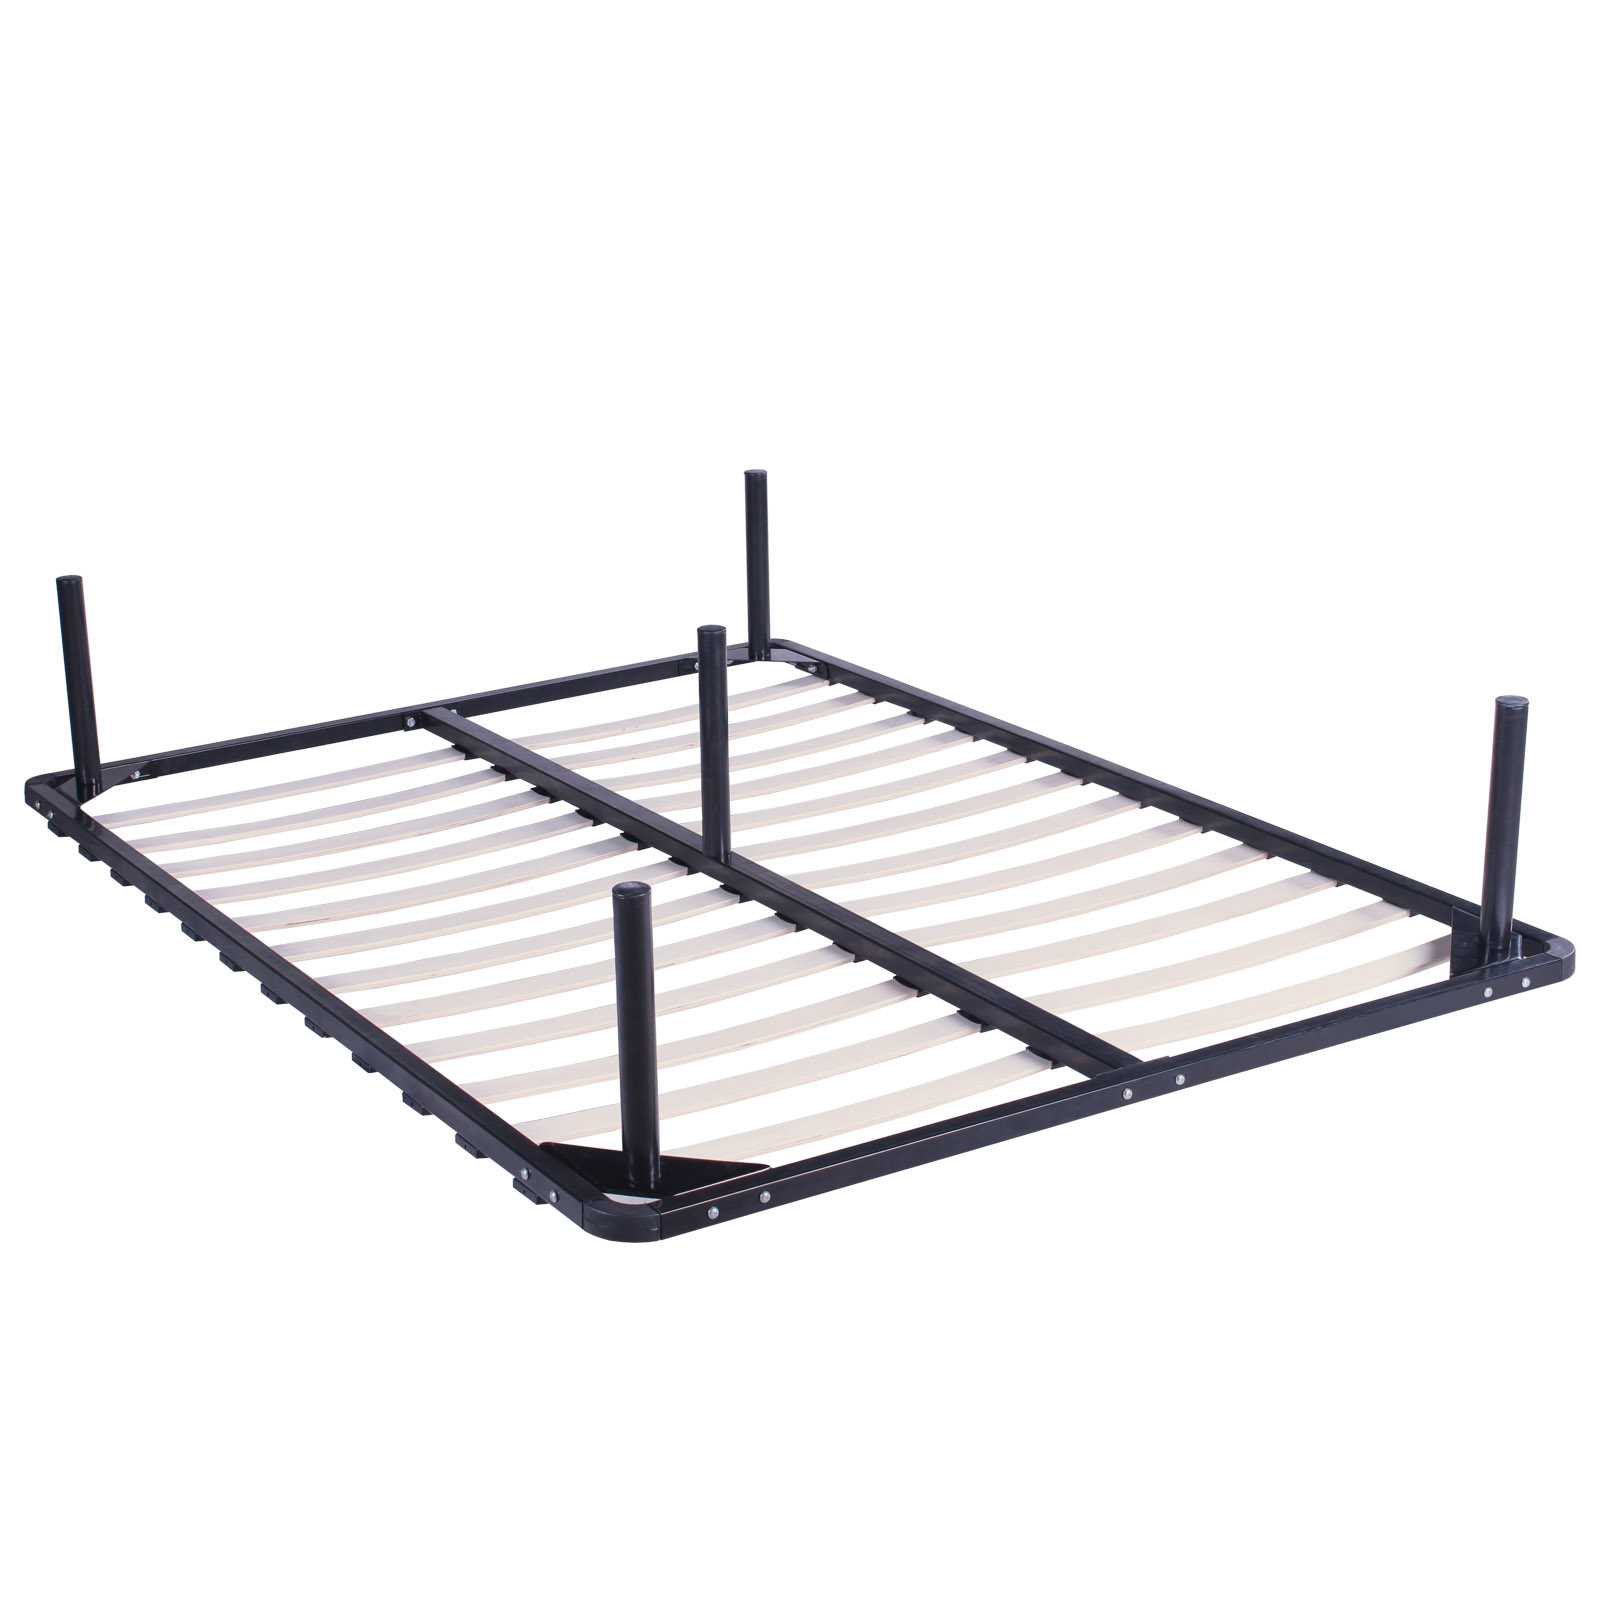 Full size wood slats metal bed frame platform bedroom for Full size bed frame